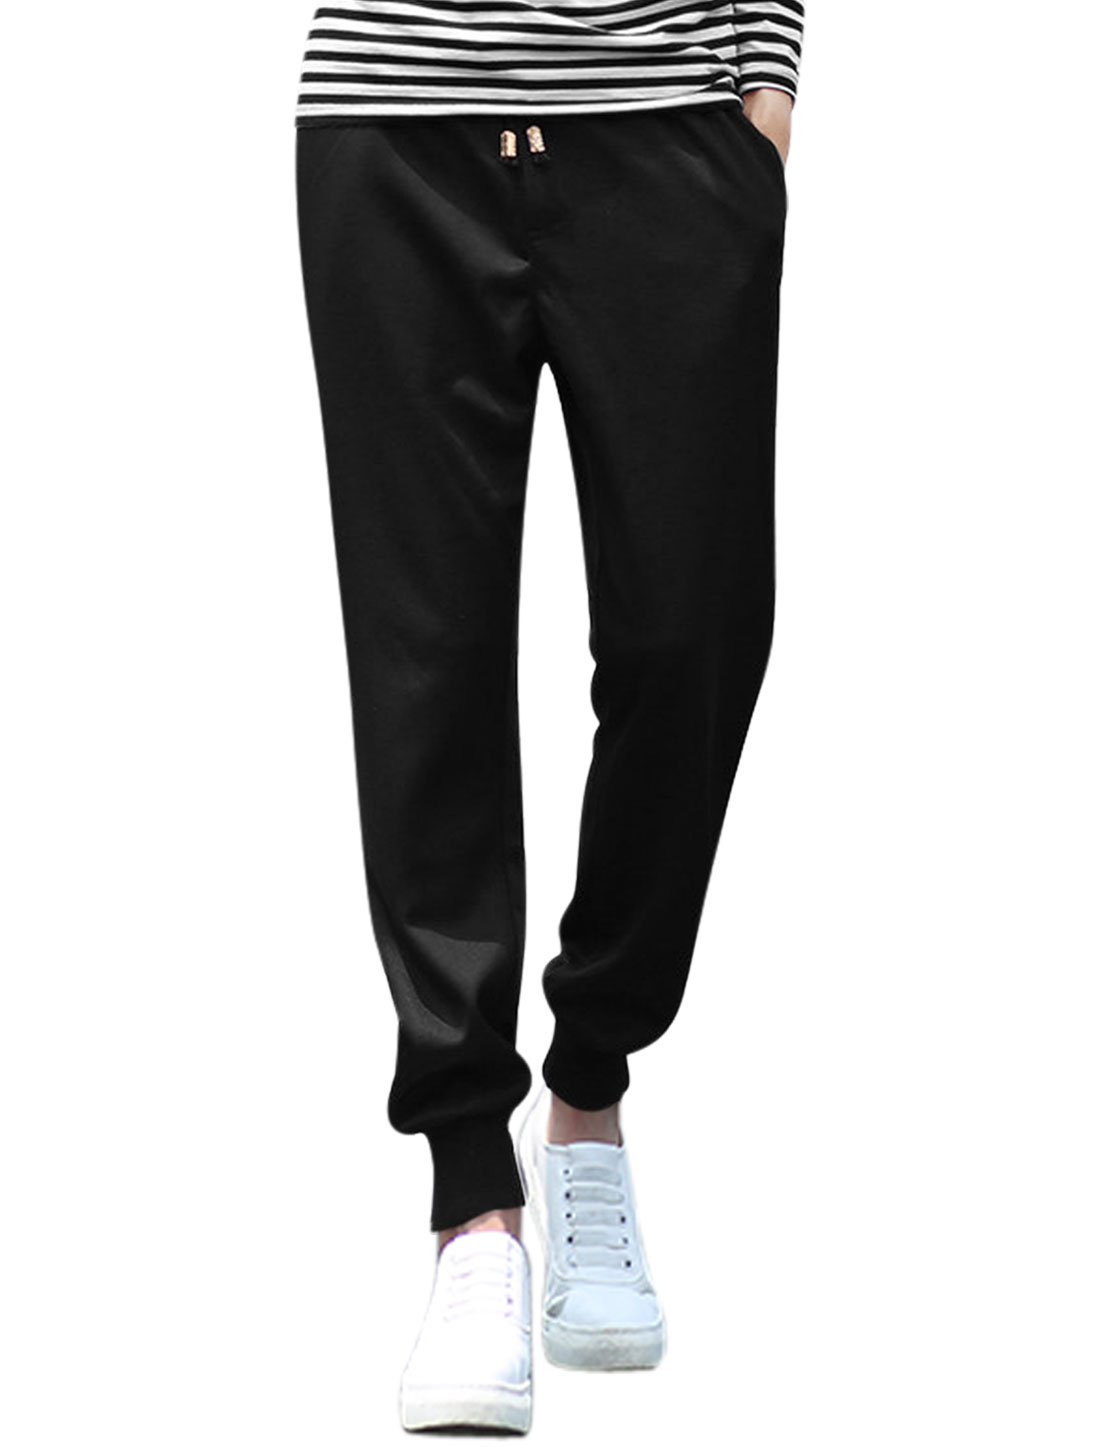 Men Zip Fly Natural Waist Casual Tapered Trousers Black W32